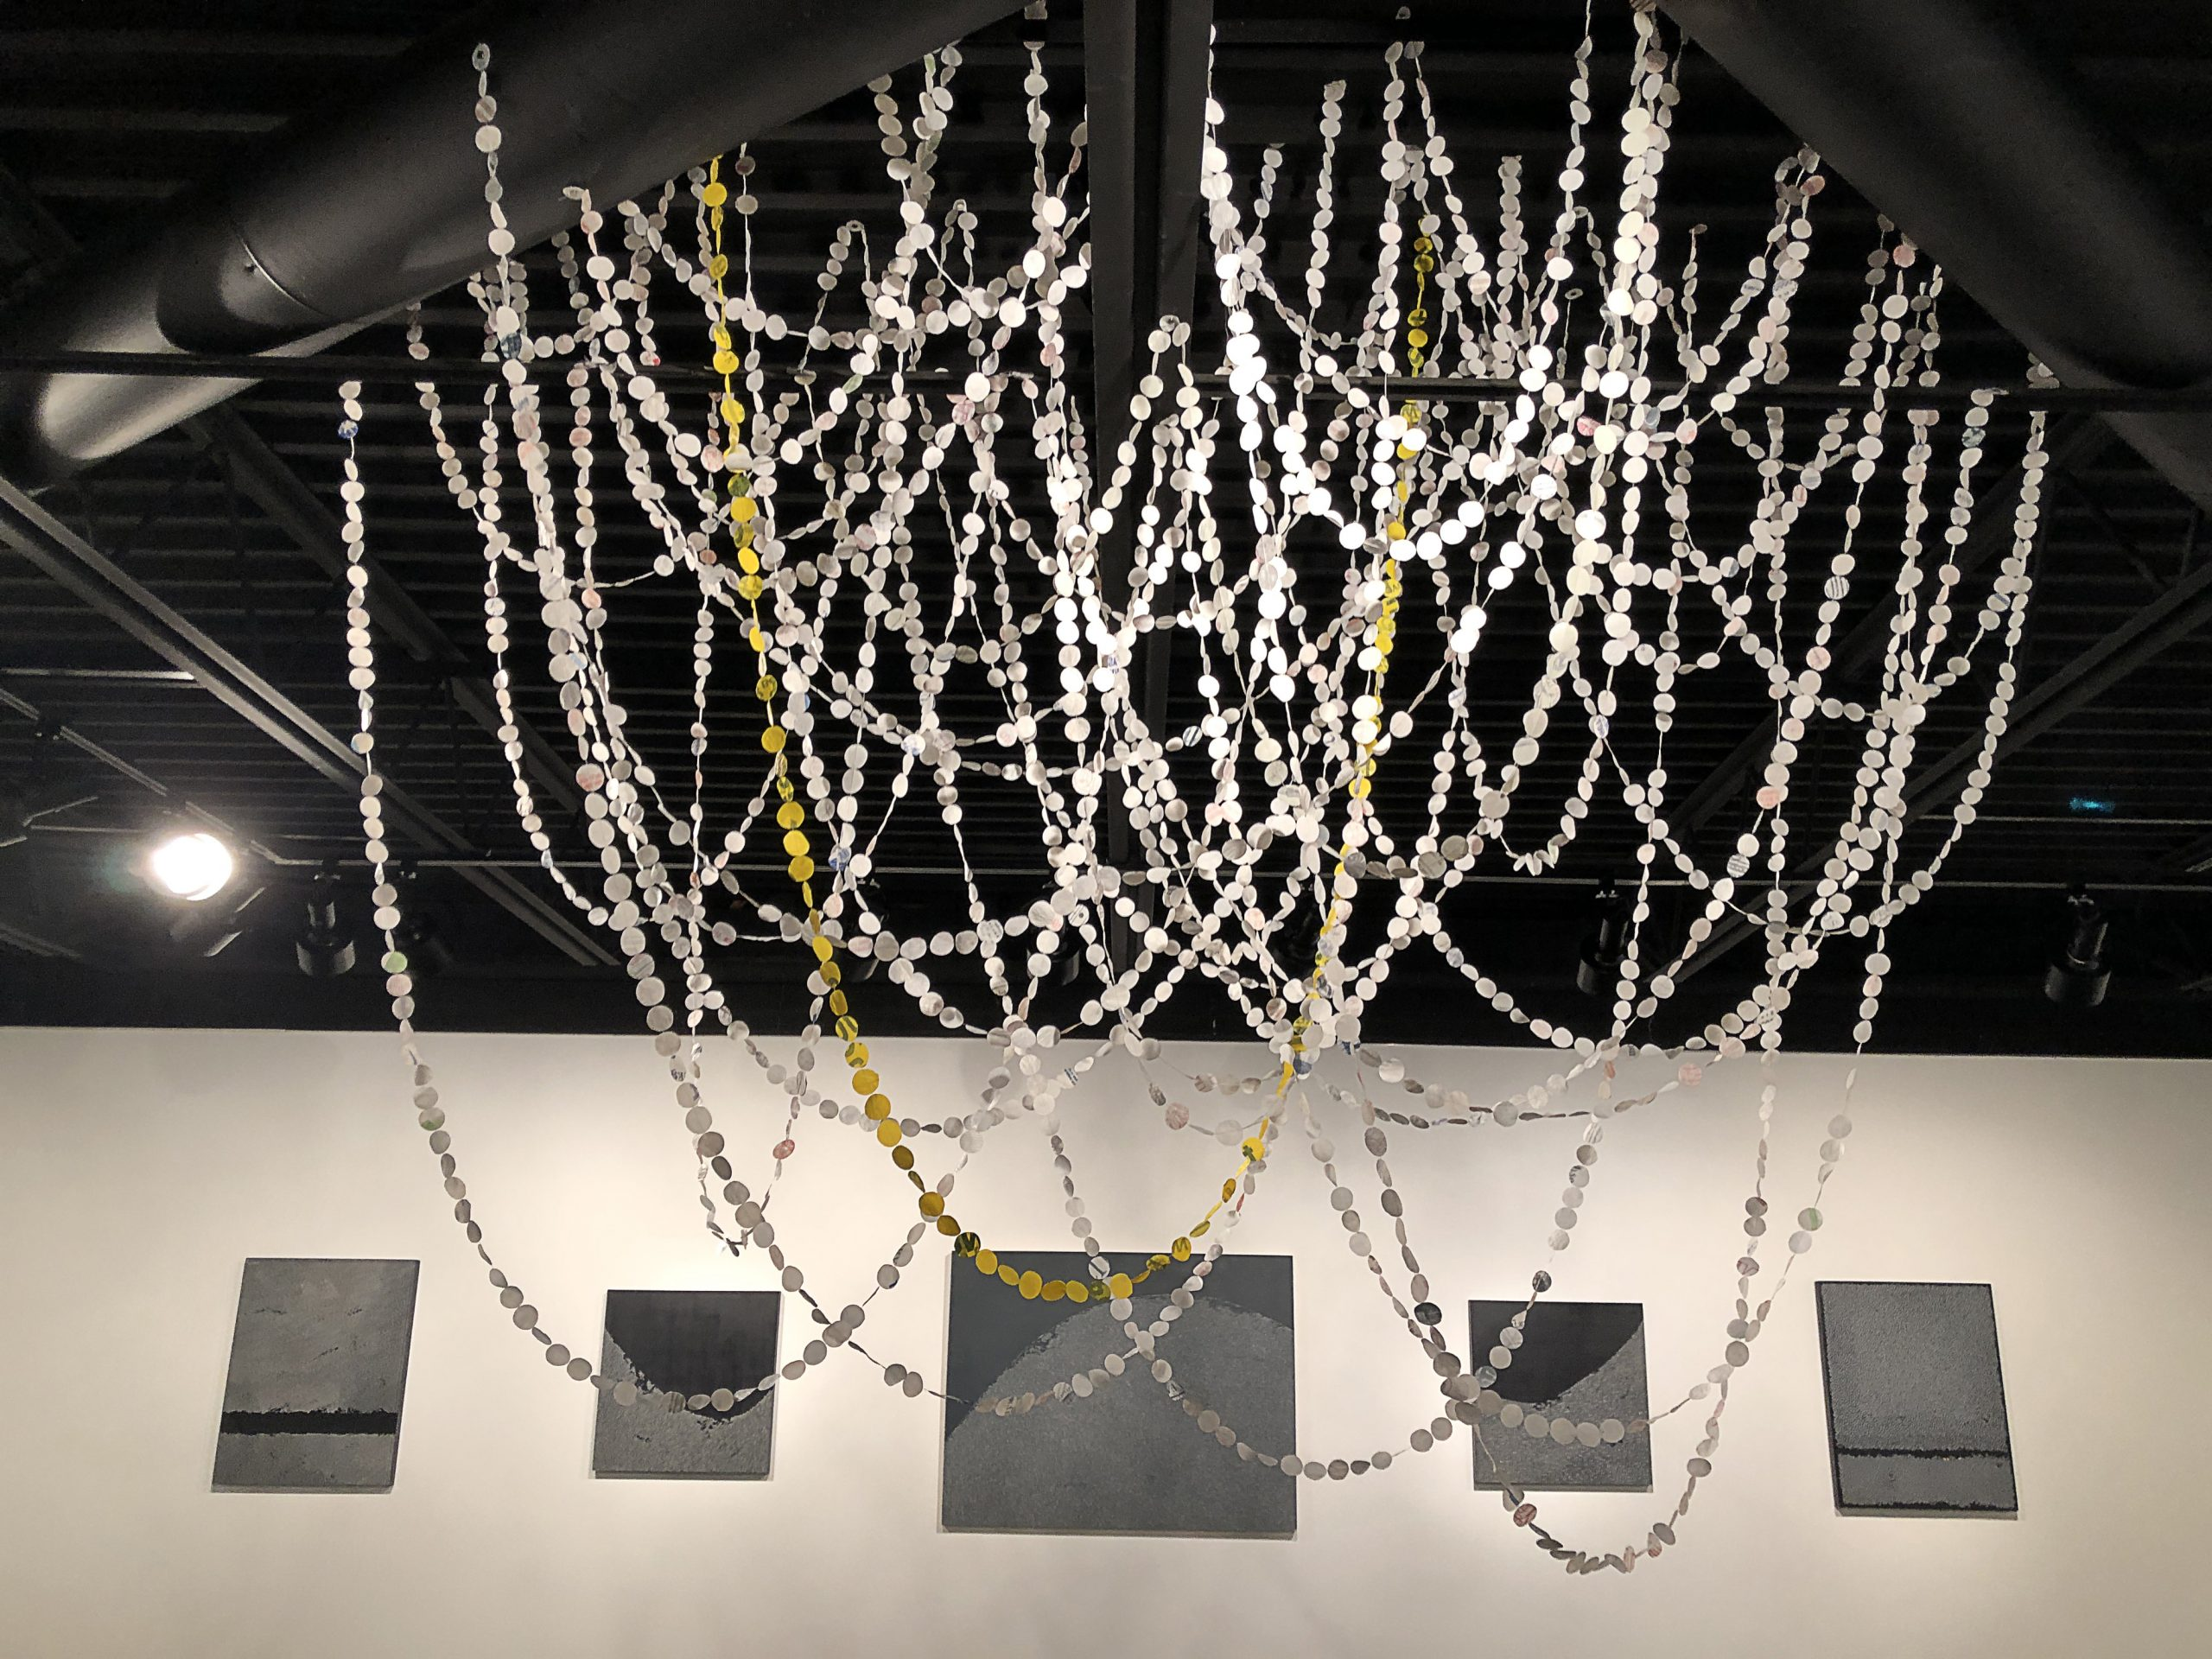 beads in gallery